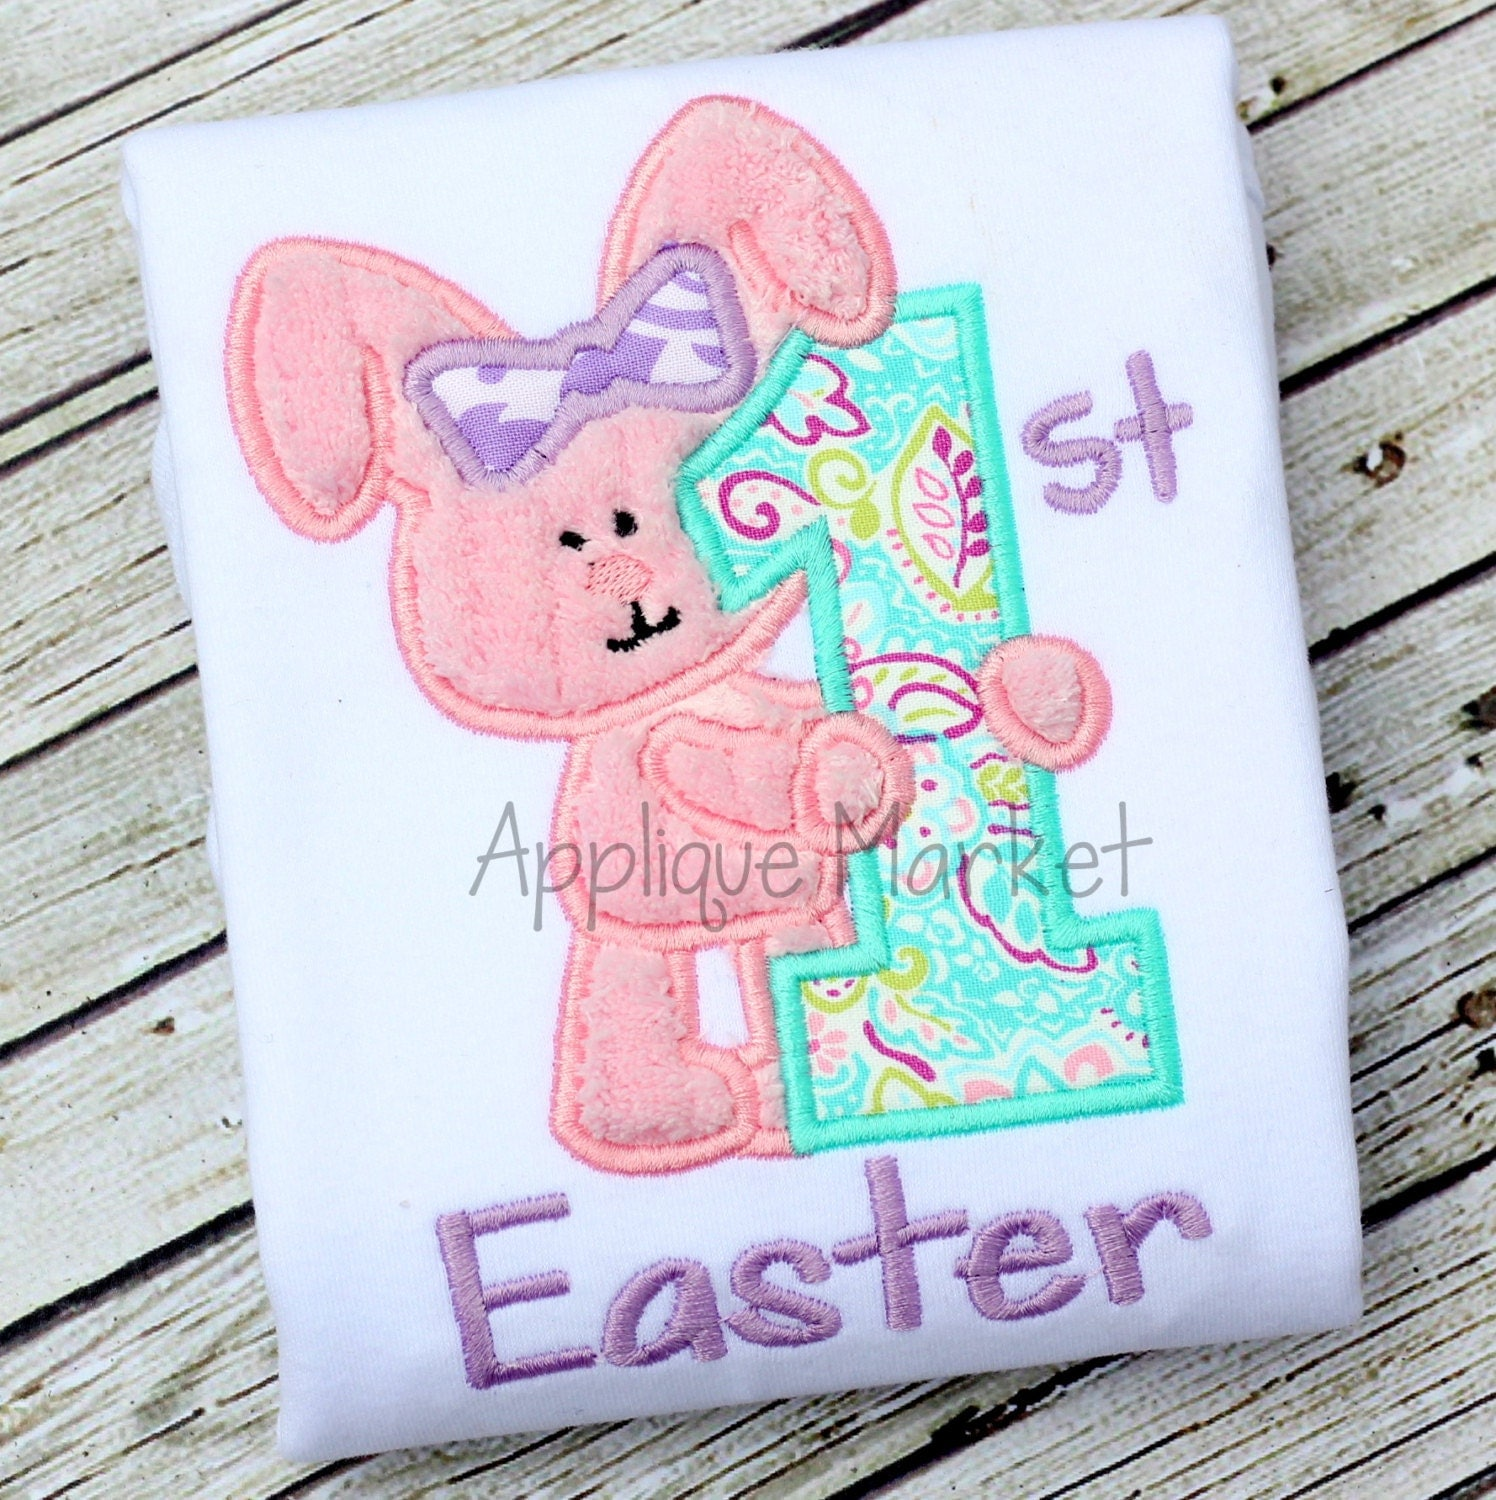 Machine embroidery design applique my first easter girl